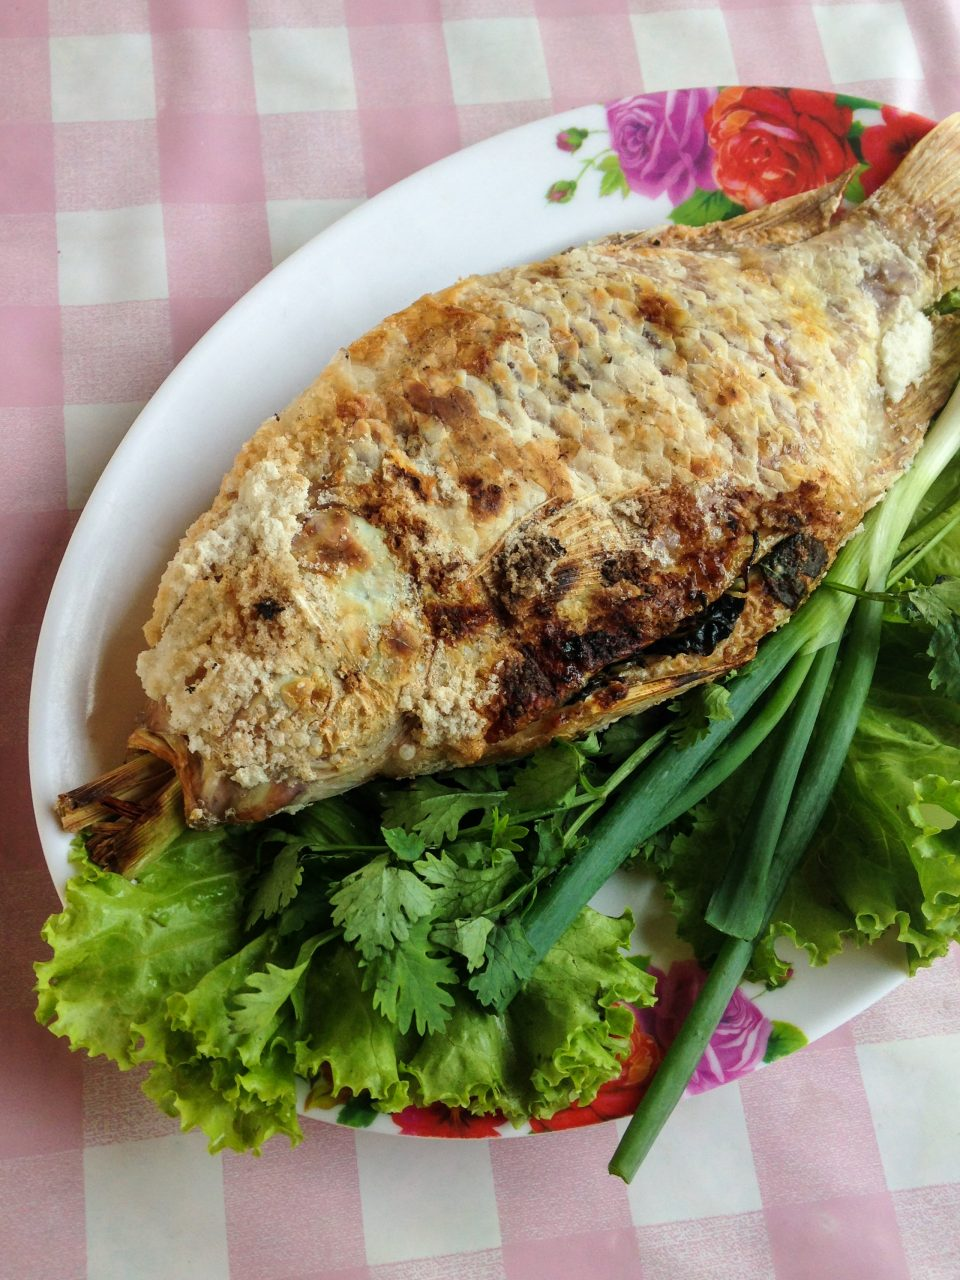 Grilled Tilapia at Huay Tung Tao Lake in Chiang Mai